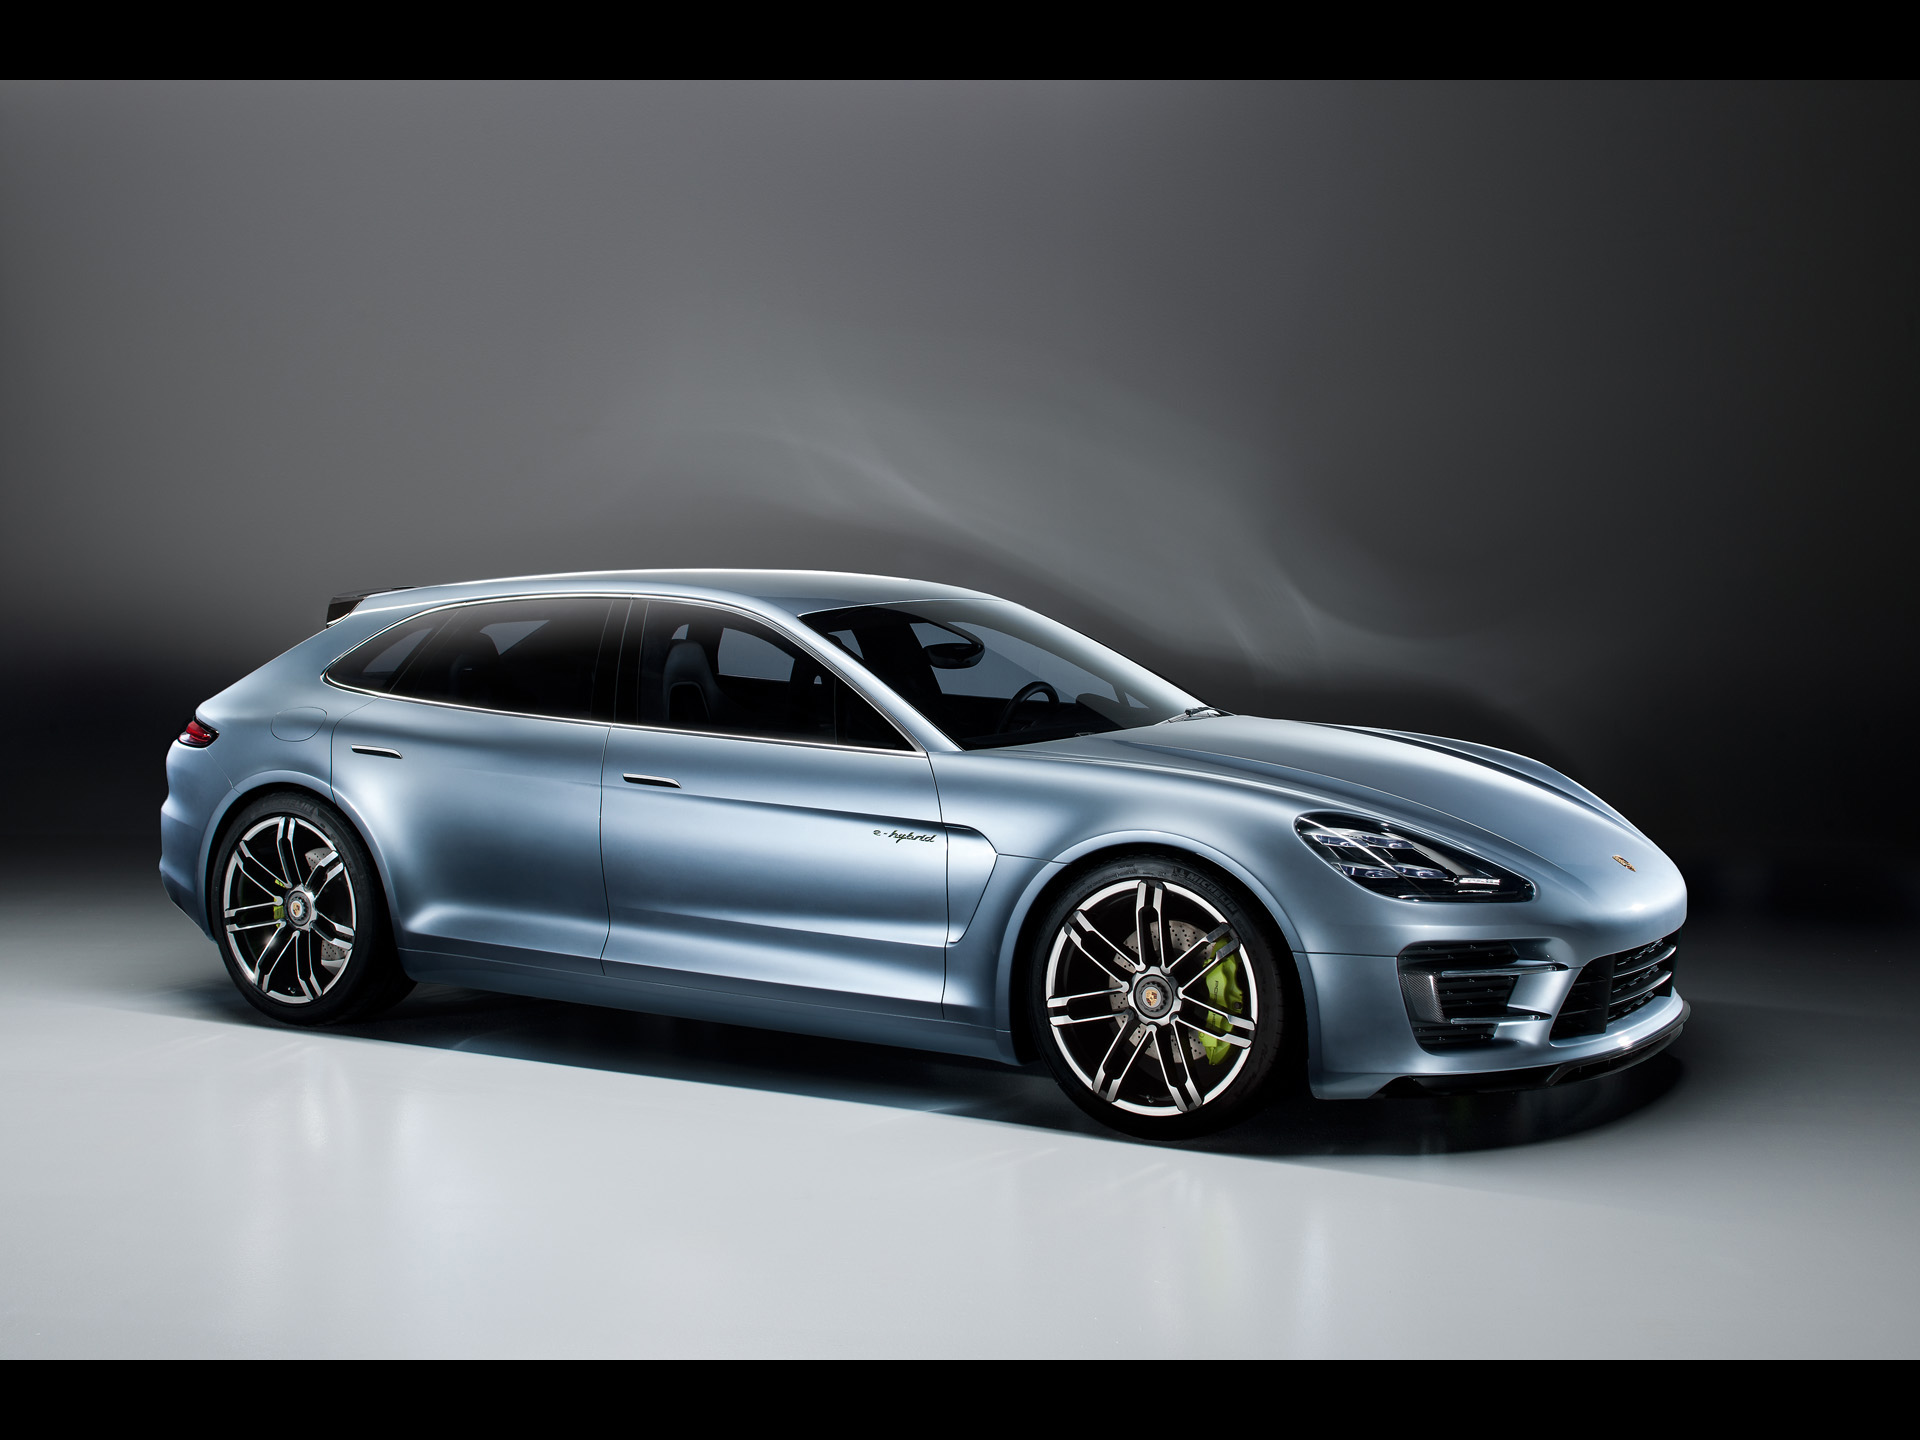 click to free download the wallpaper--Porsche Panamera Sport Turismo Concept, Smooth Lines from the Side Look, Car Images Are Great Fits 1920X1440 free wallpaper download